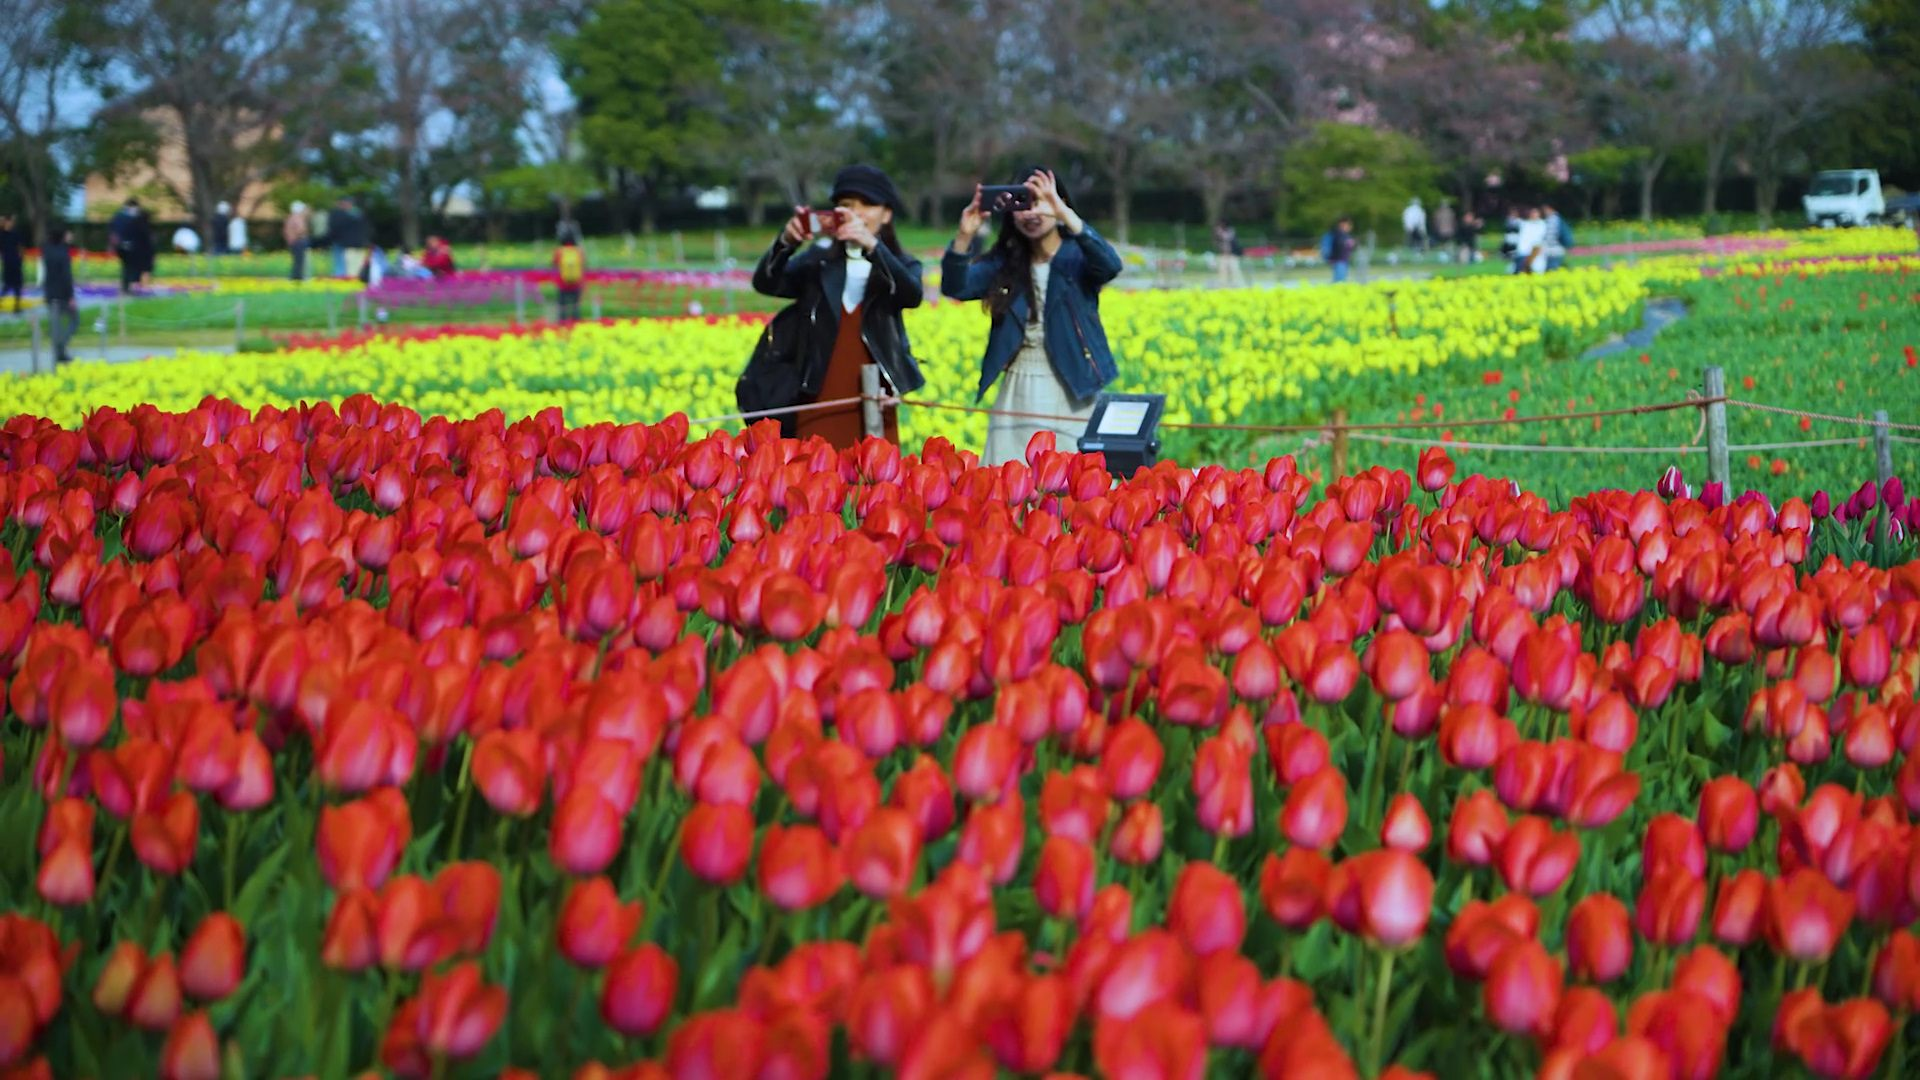 Tulips are photographed in full bloom.